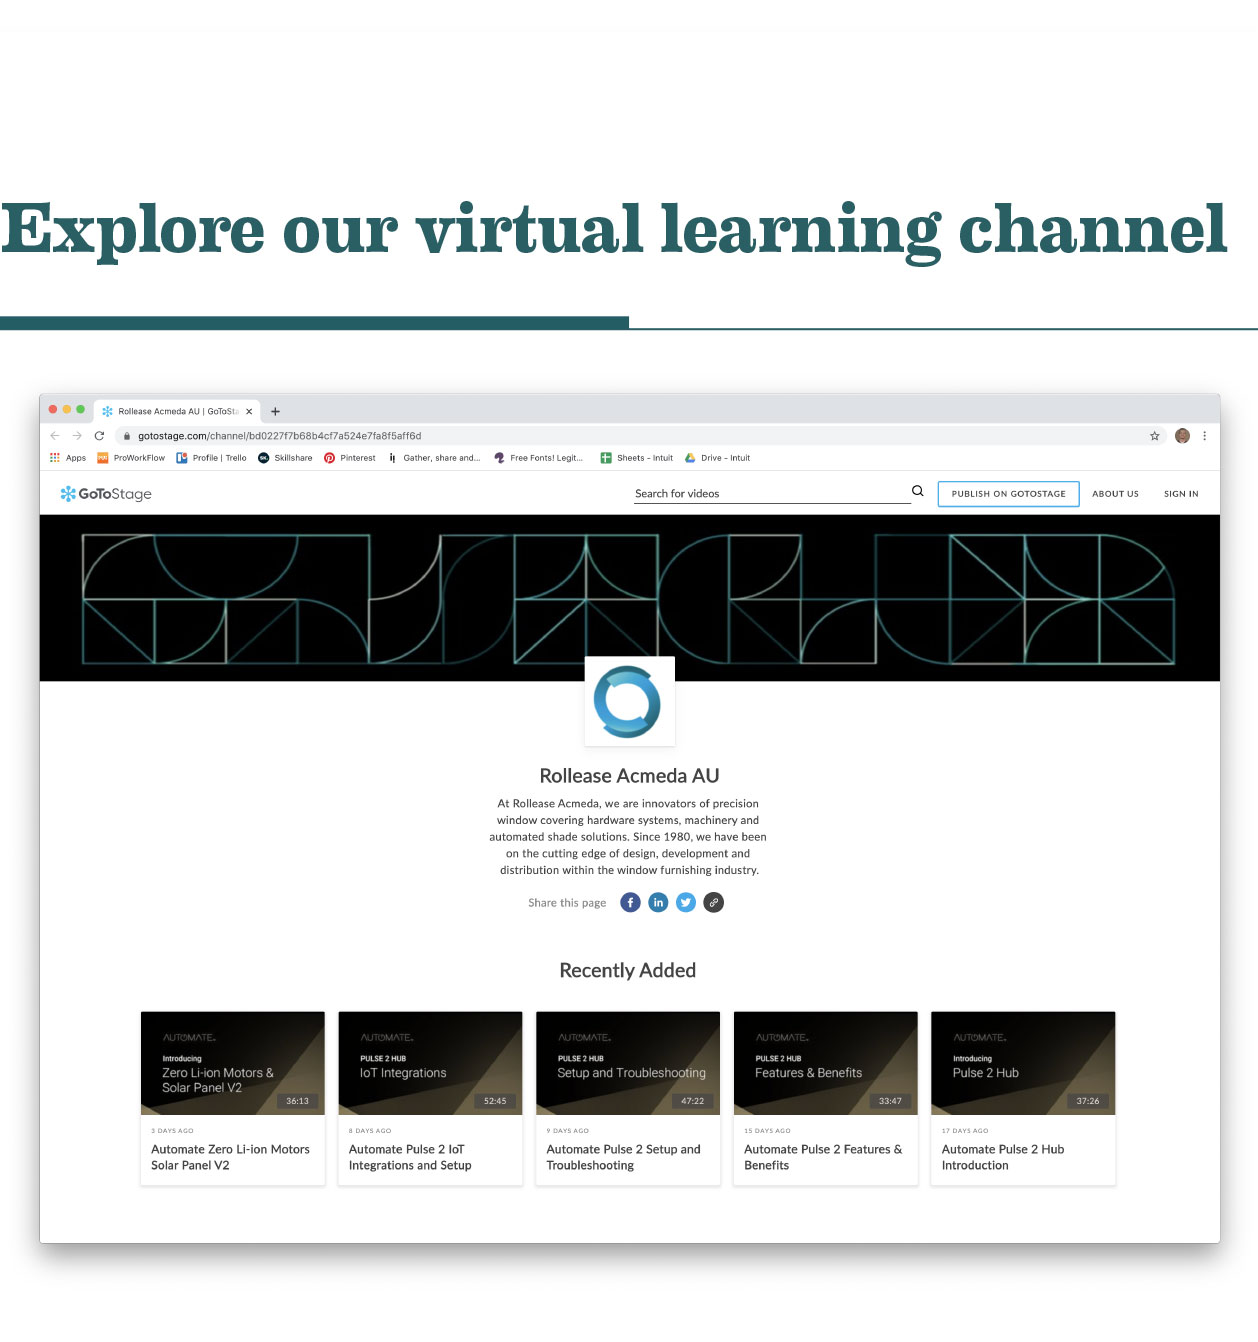 Explore our virtual learning channel